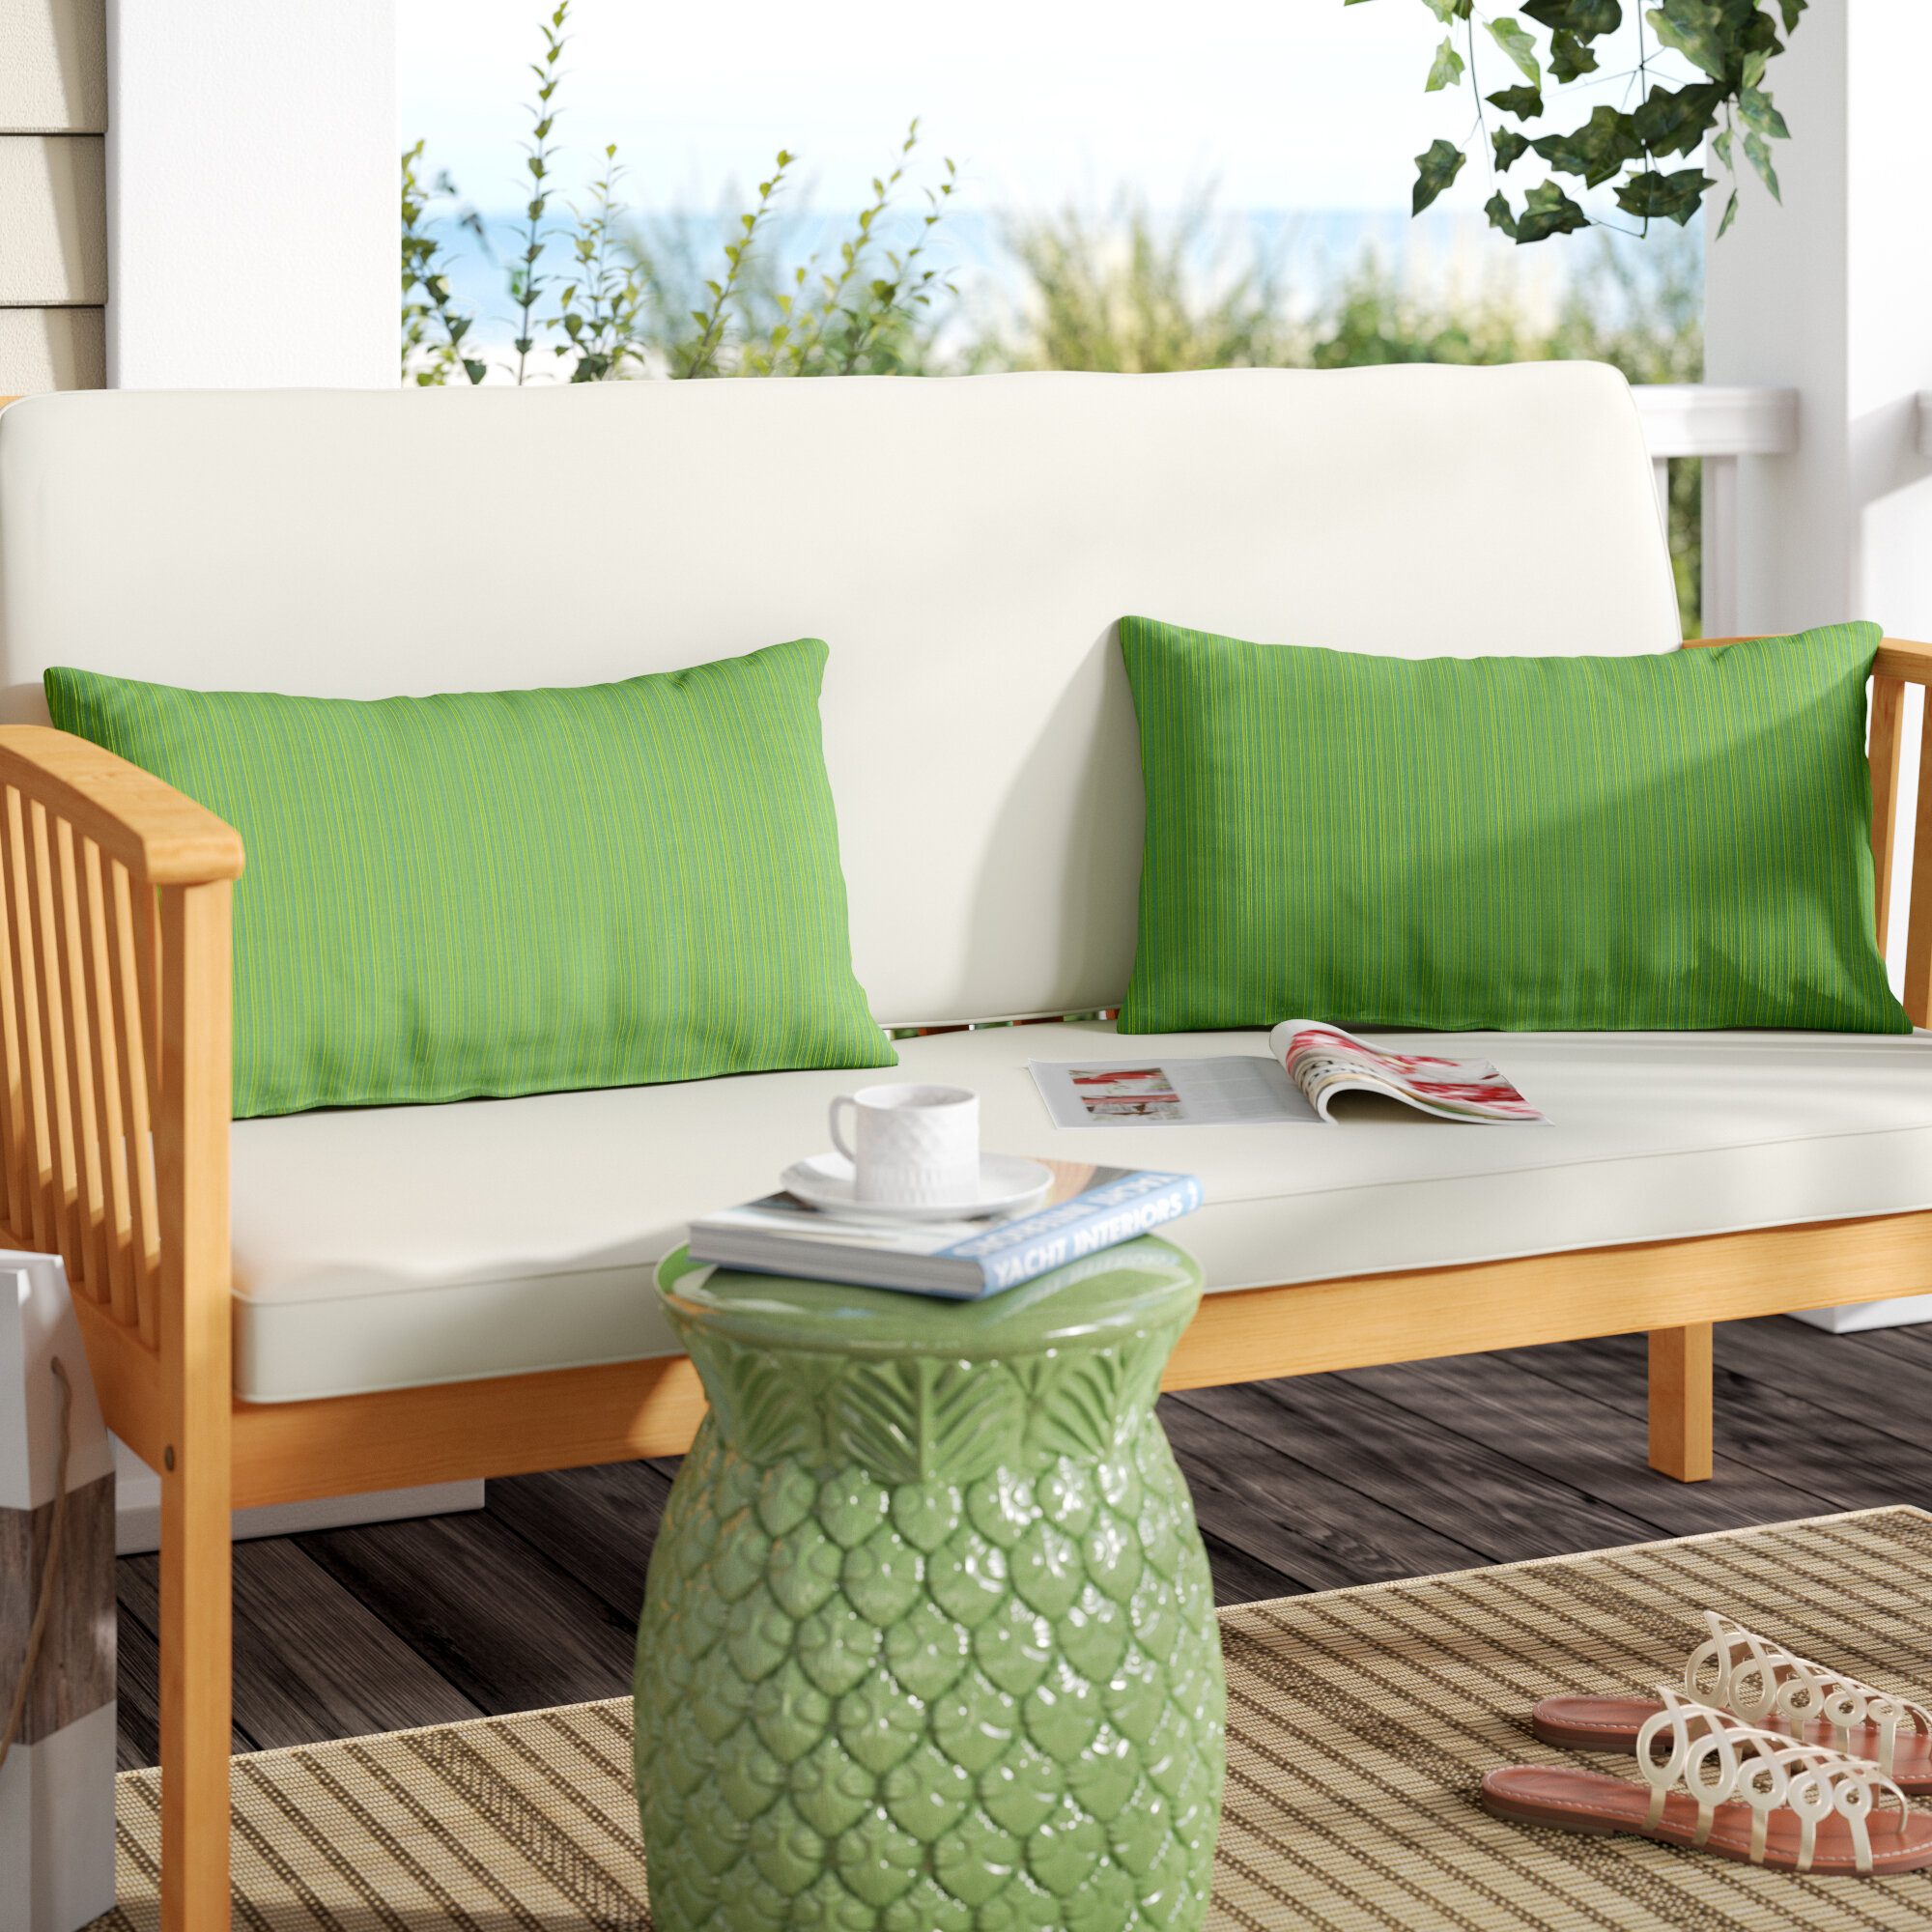 Canvas Forest Green And Canvas Natural Set Of 2 Mozaic Company Sunbrella Indoor Outdoor Corded Pillows Decorative Pillows